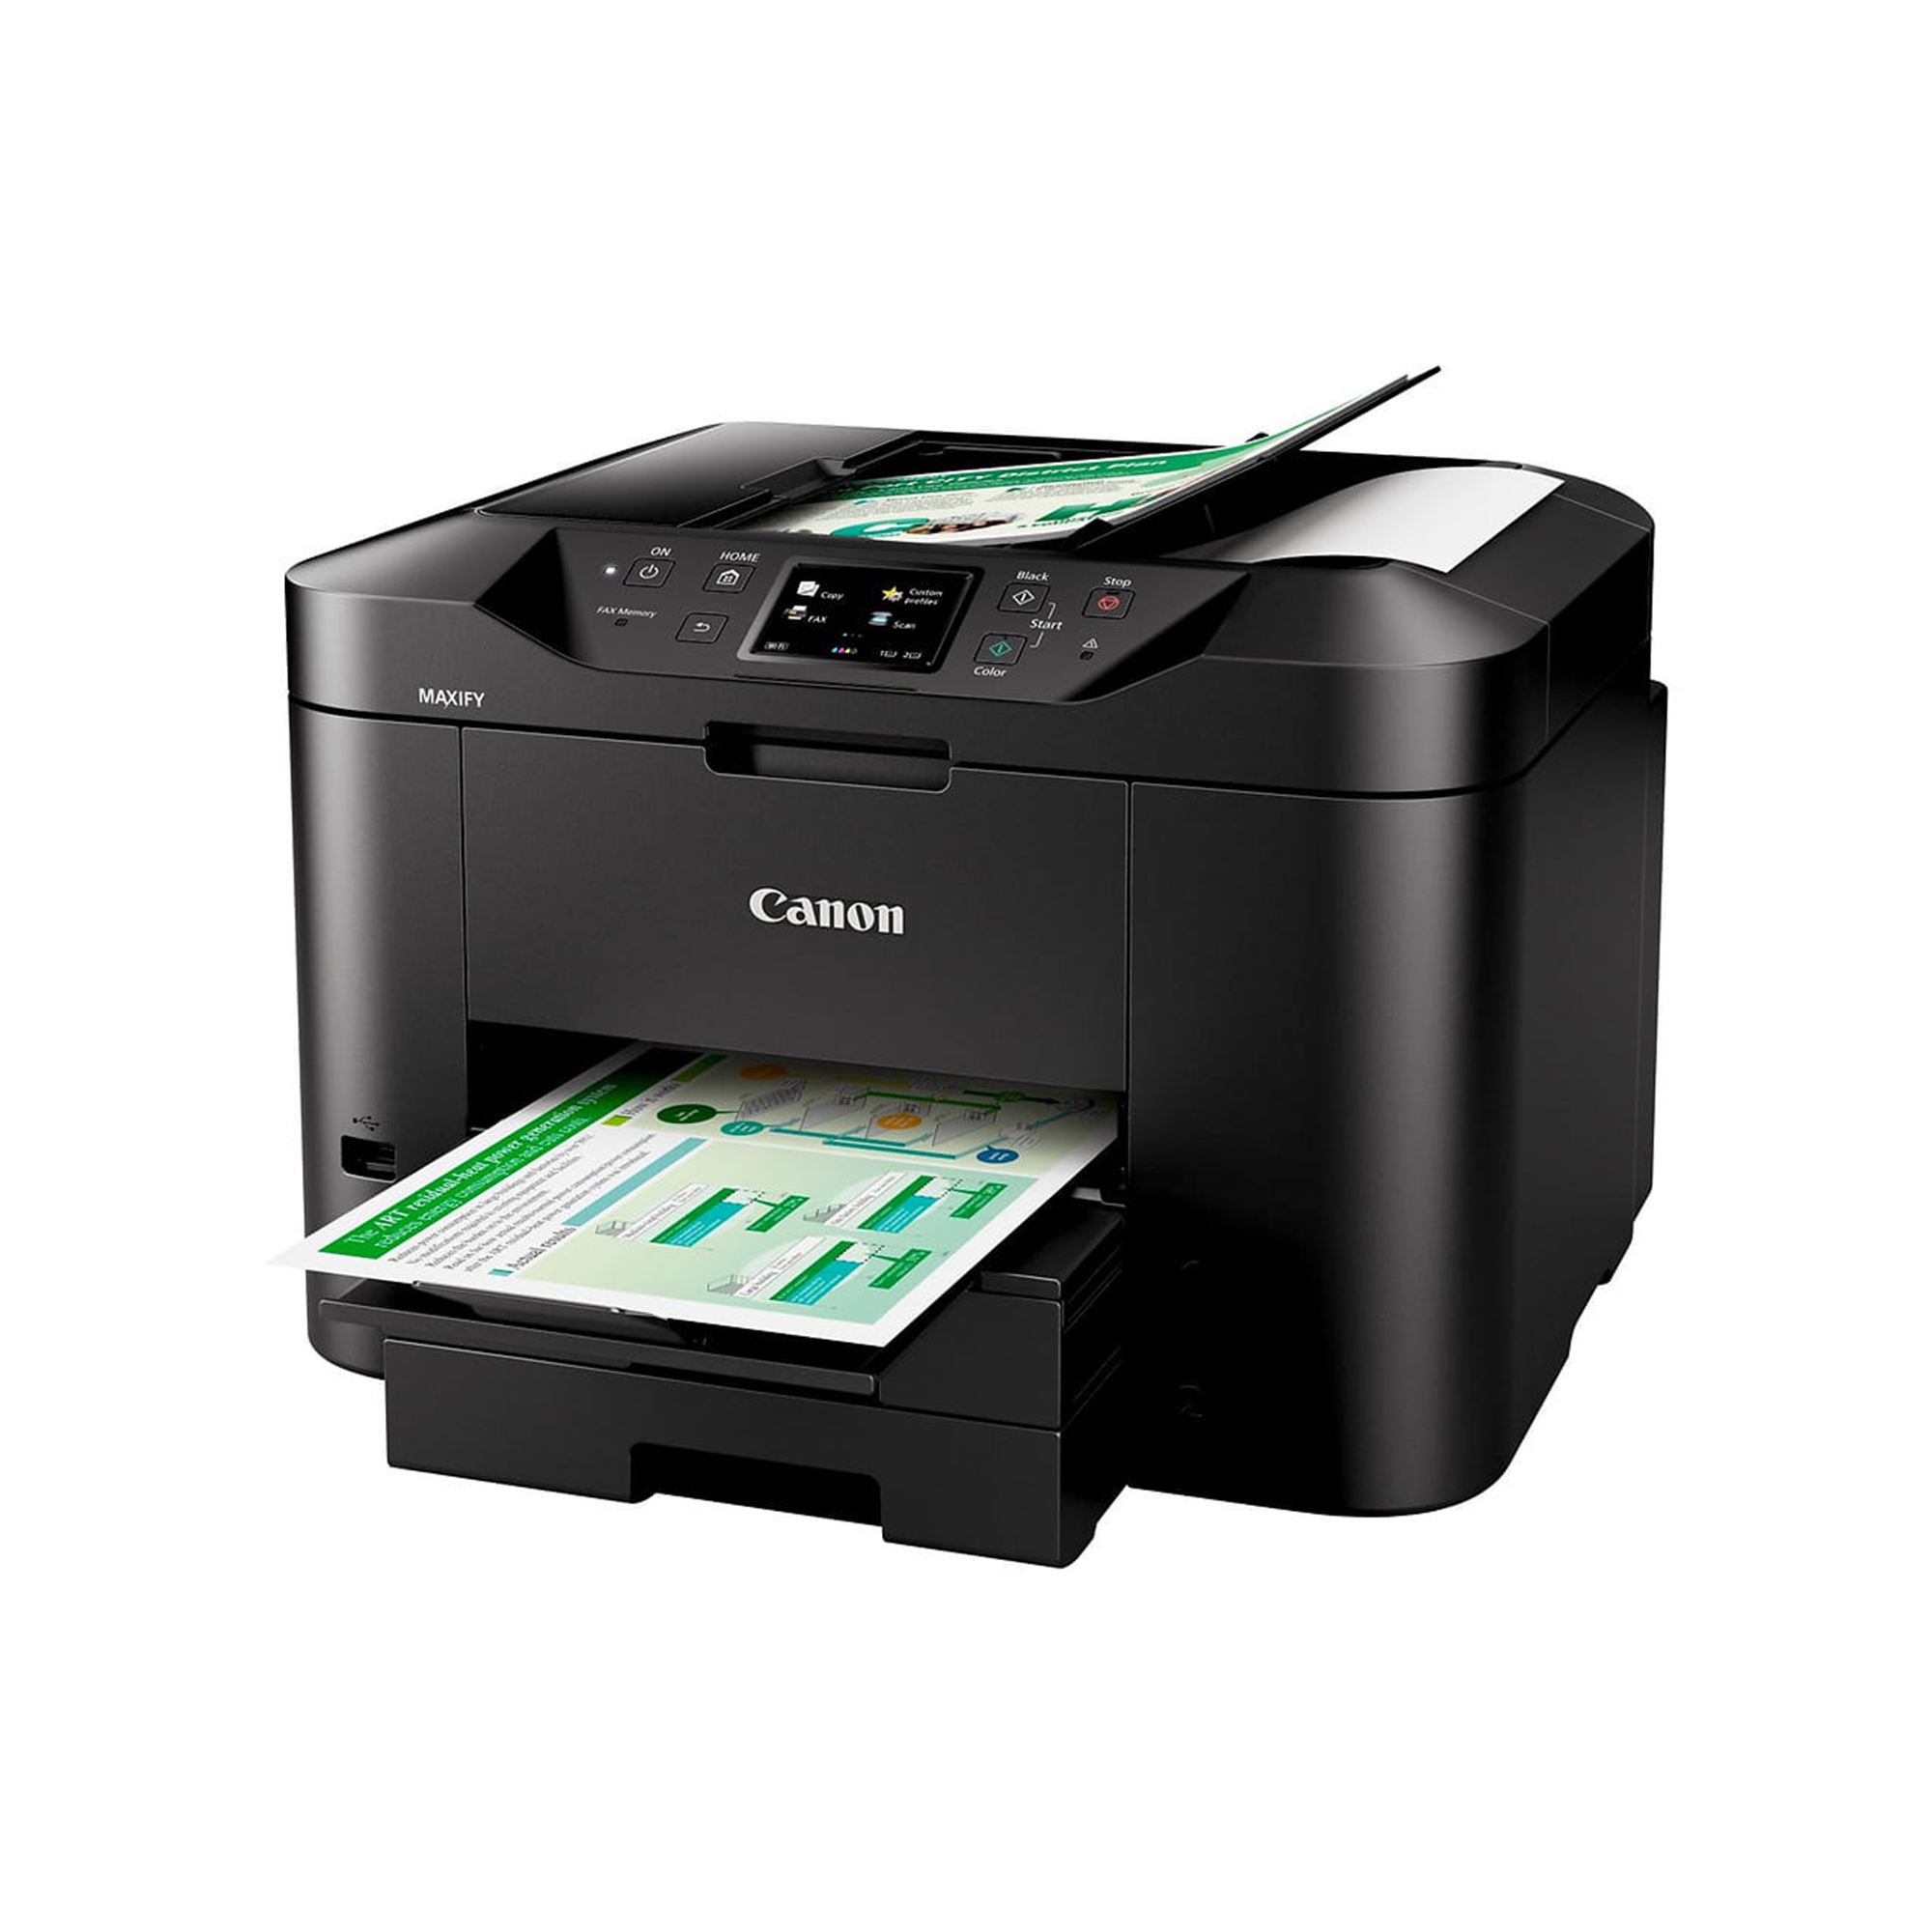 Canon MAXIFY MB2740 Inkjet Printer